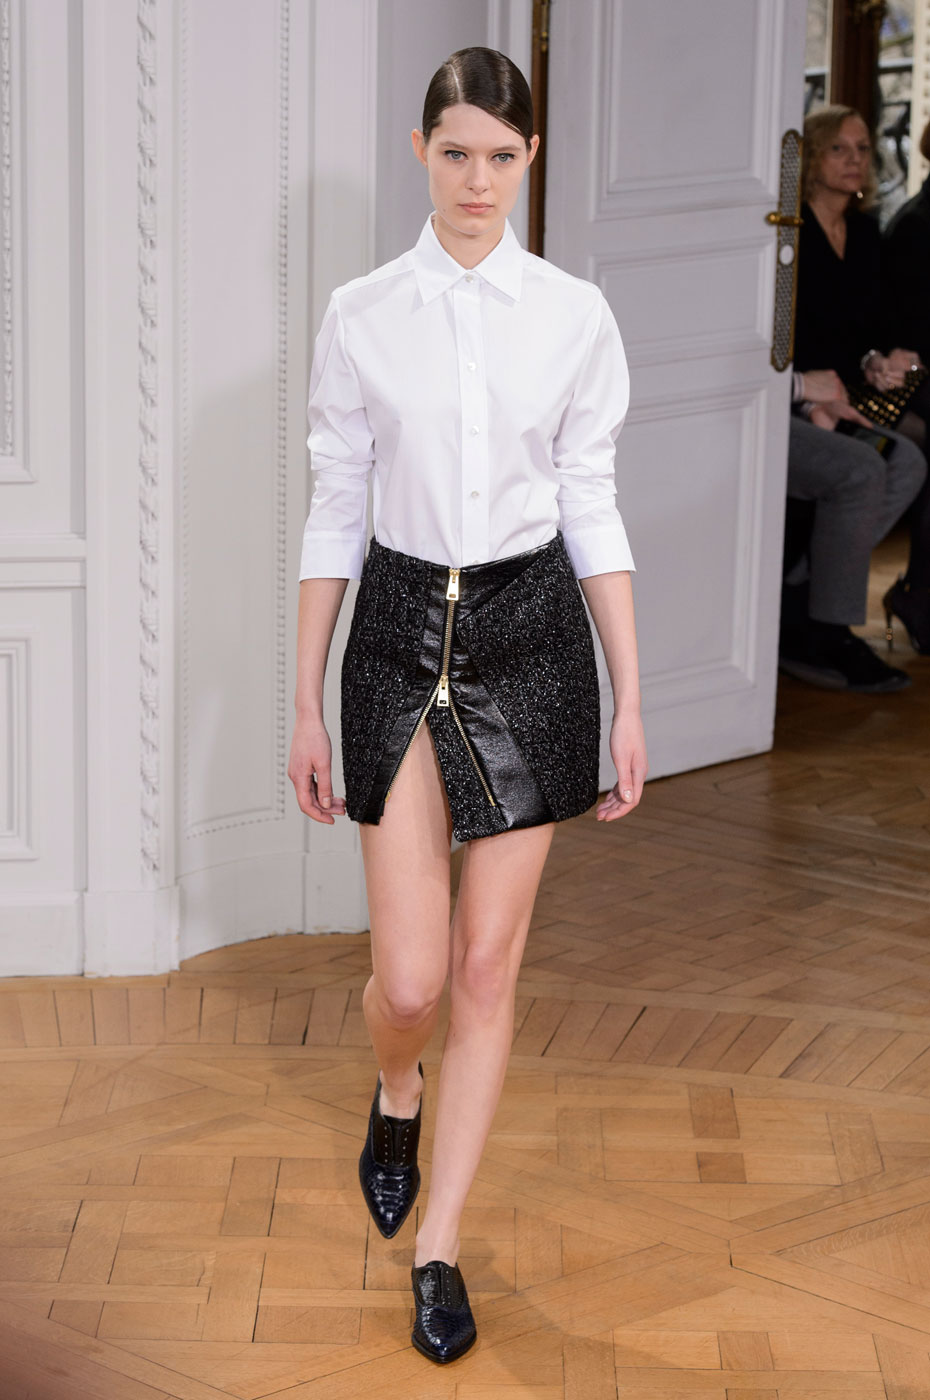 Bouchra-Jarrar-fashion-runway-show-haute-couture-paris-spring-summer-2015-the-impression-31